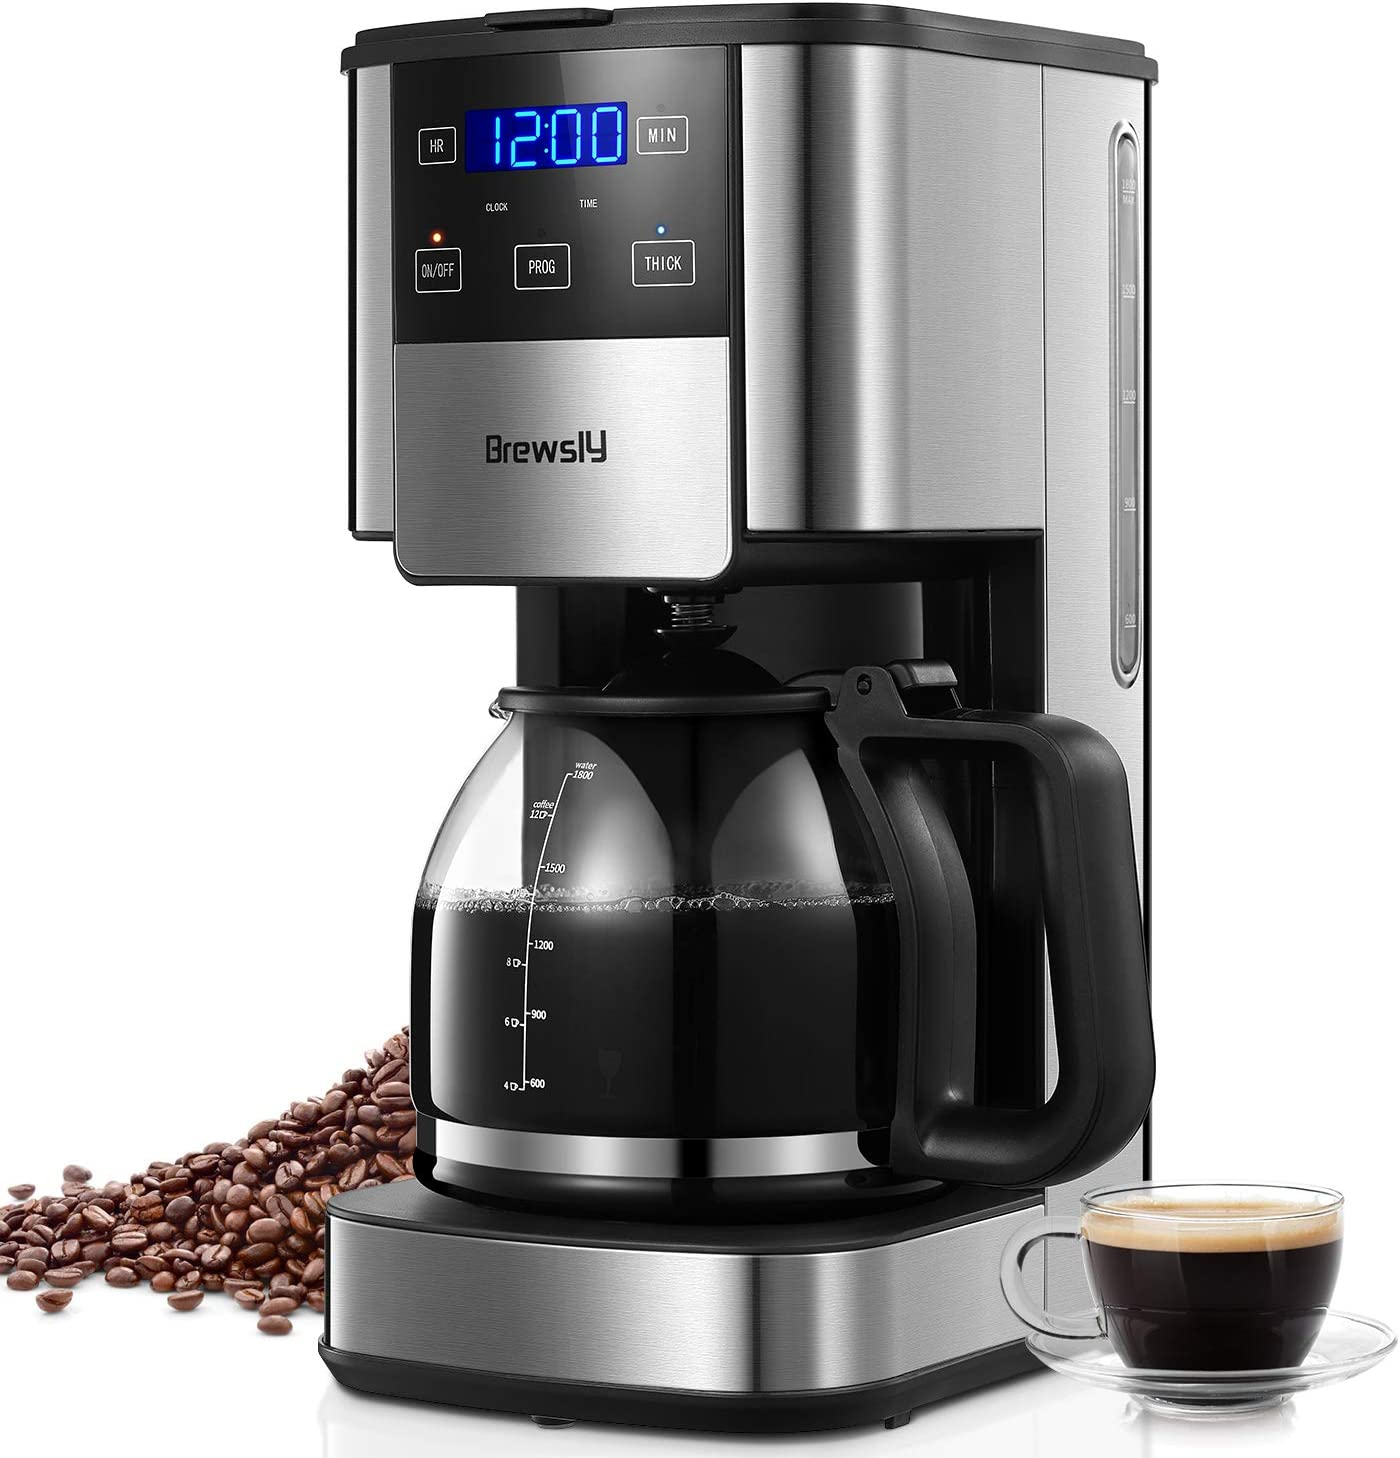 Brewsly 12-Cup Coffee Maker, Touch Screen Programmable Drip Coffee Machine with Regular and Thick Brews, Stainless Steel Coffee Brewer, Pause & Serve Function, Keep Warm 2 Hours, Anti-Drip System